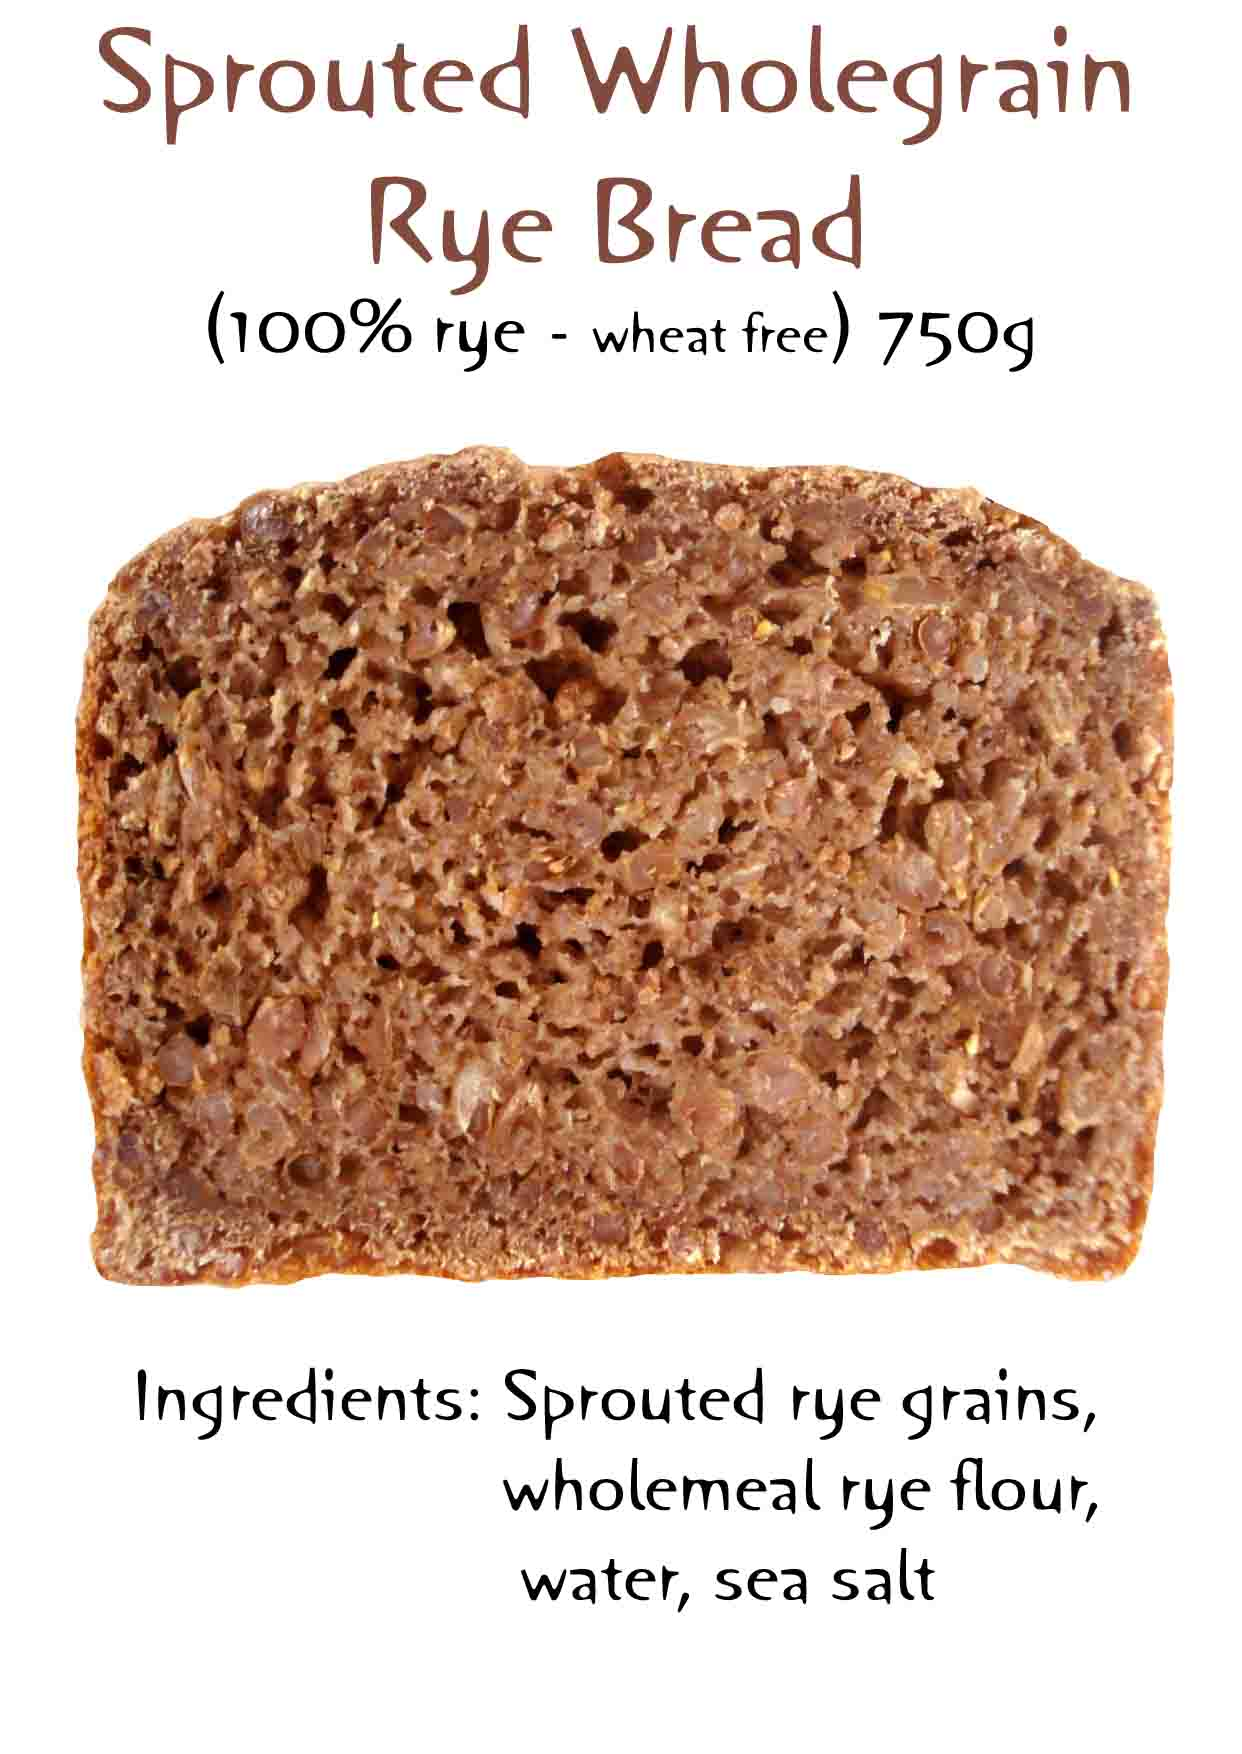 Make a Free Website with Yola.: slow-bread.com/sprouted-rye-bread.php